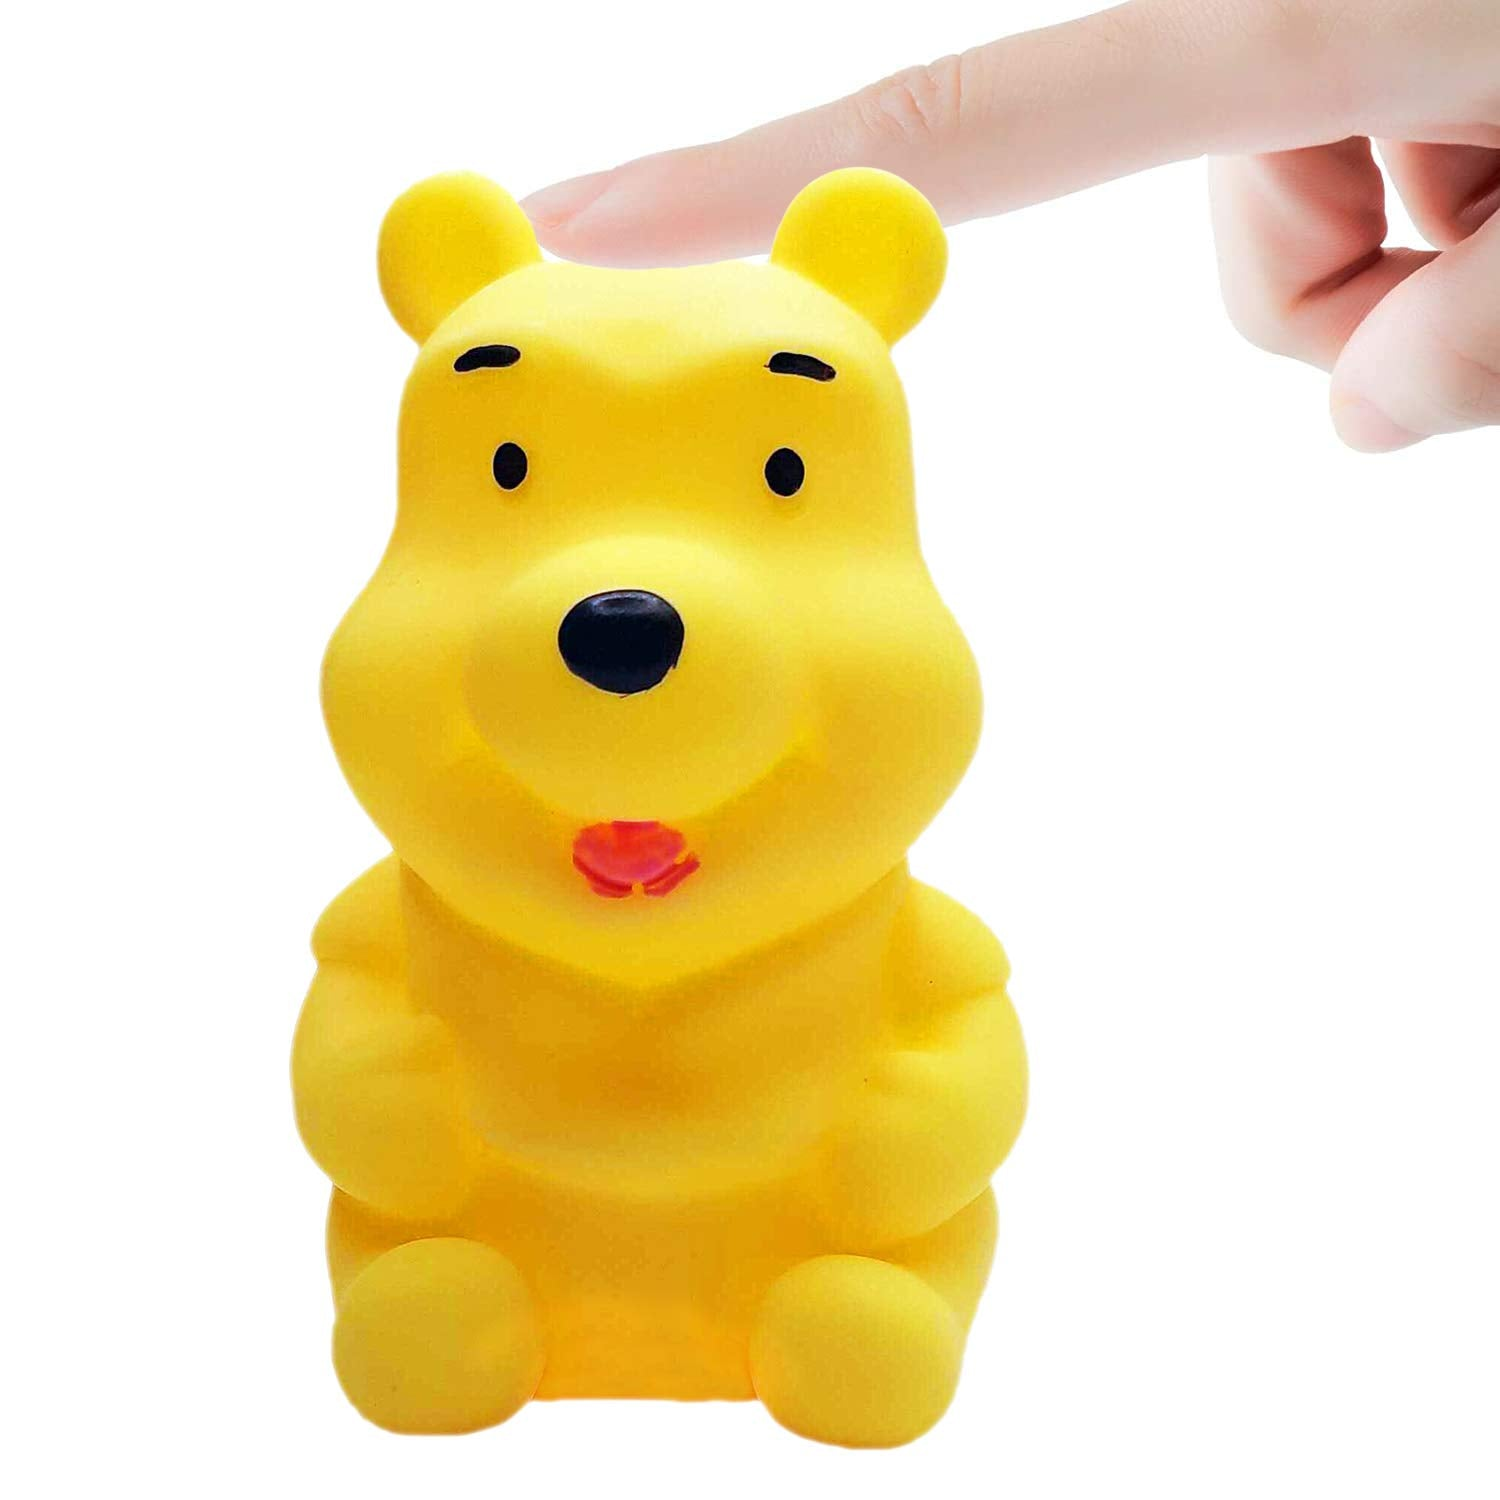 Kids Mandi Night Light Bear Shaped Lamp - Portable LED Soft Touch